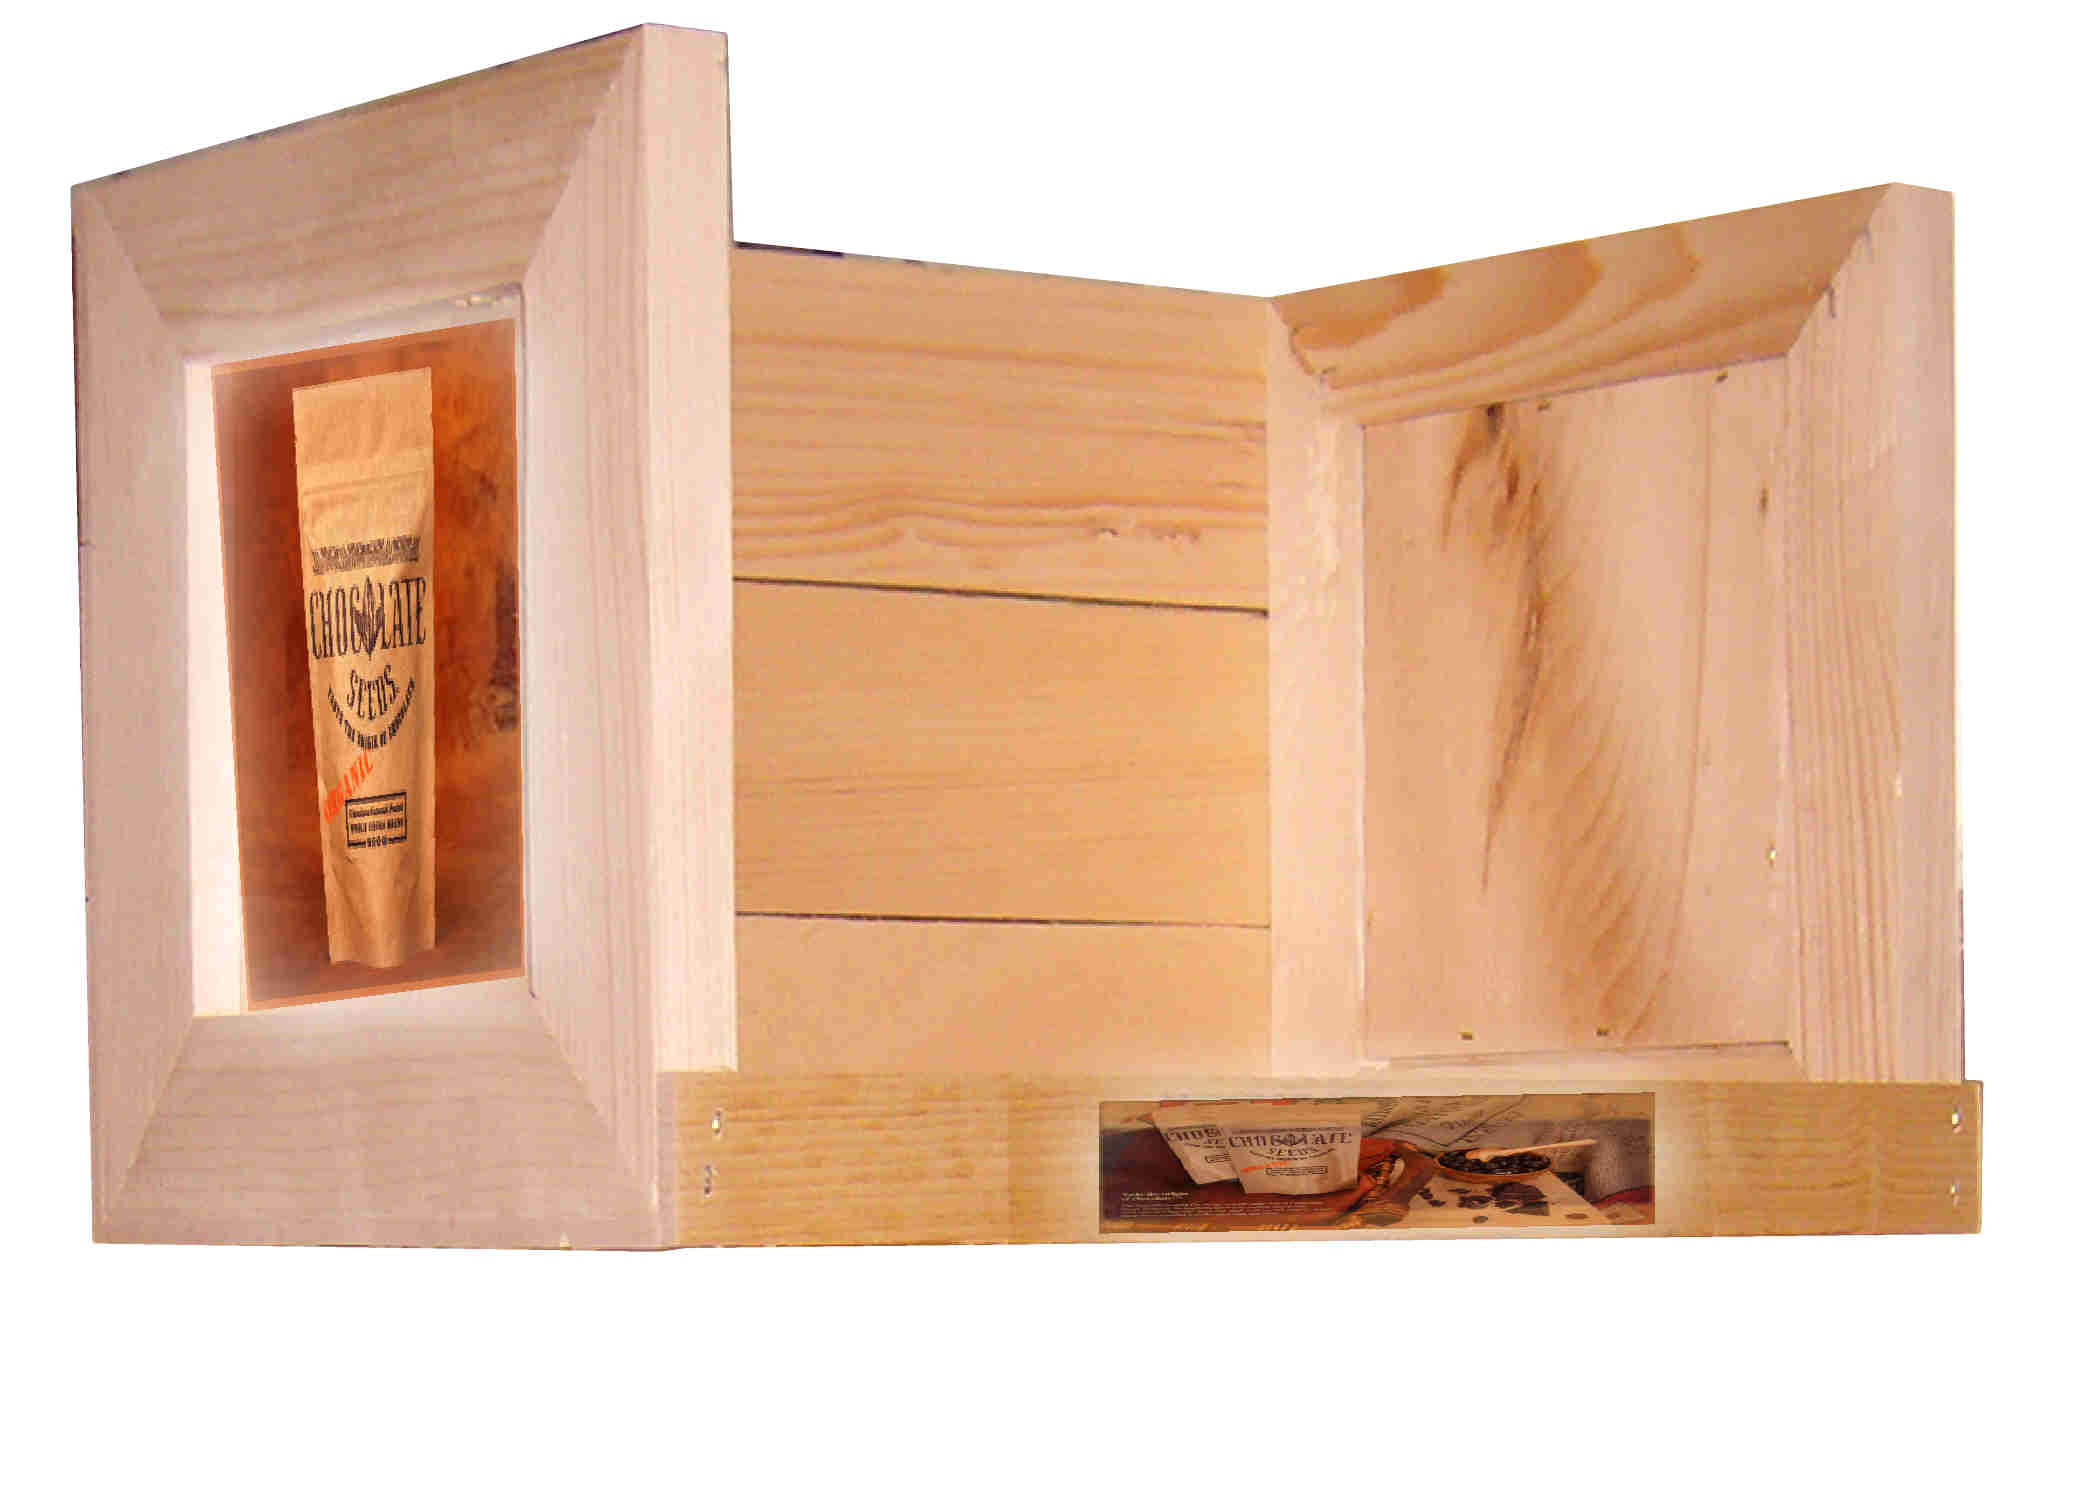 Custom wooden crates add value to your products